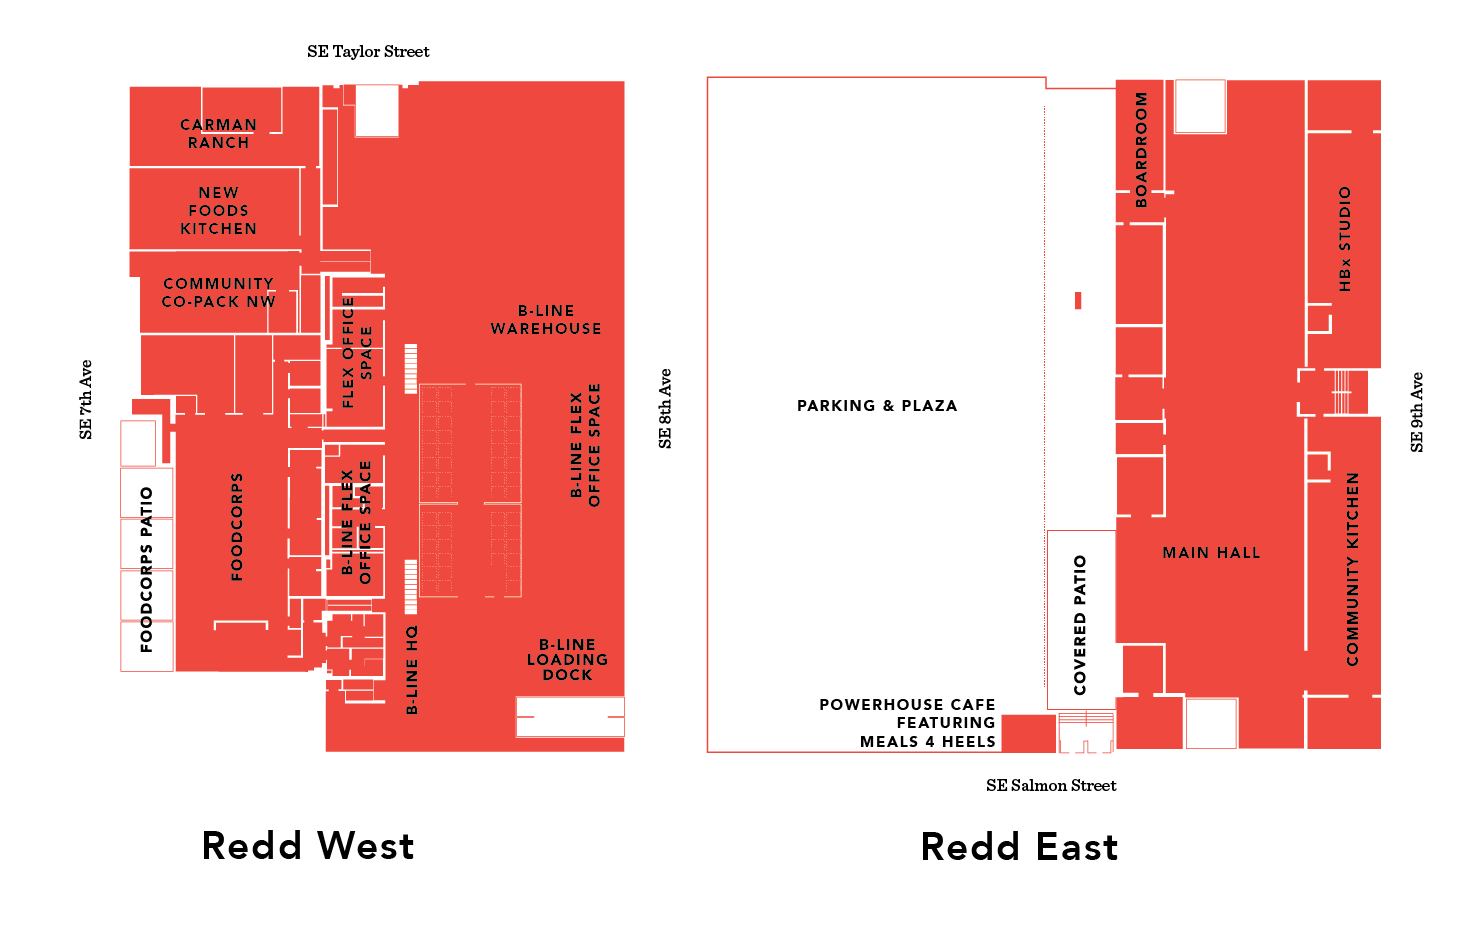 A graphical map in red showing the Redd on Salmon Street campus